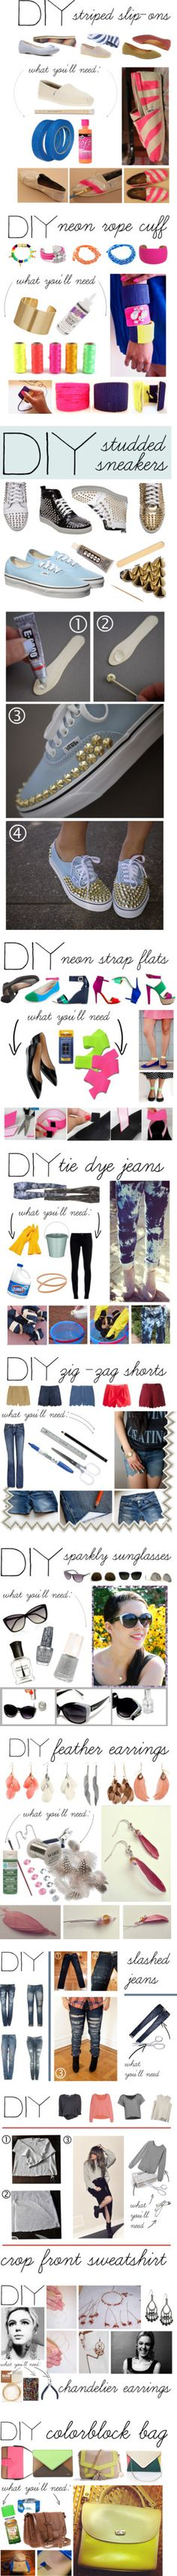 """DIY with Polyvore"" by polyvore-editorial on Polyvore"